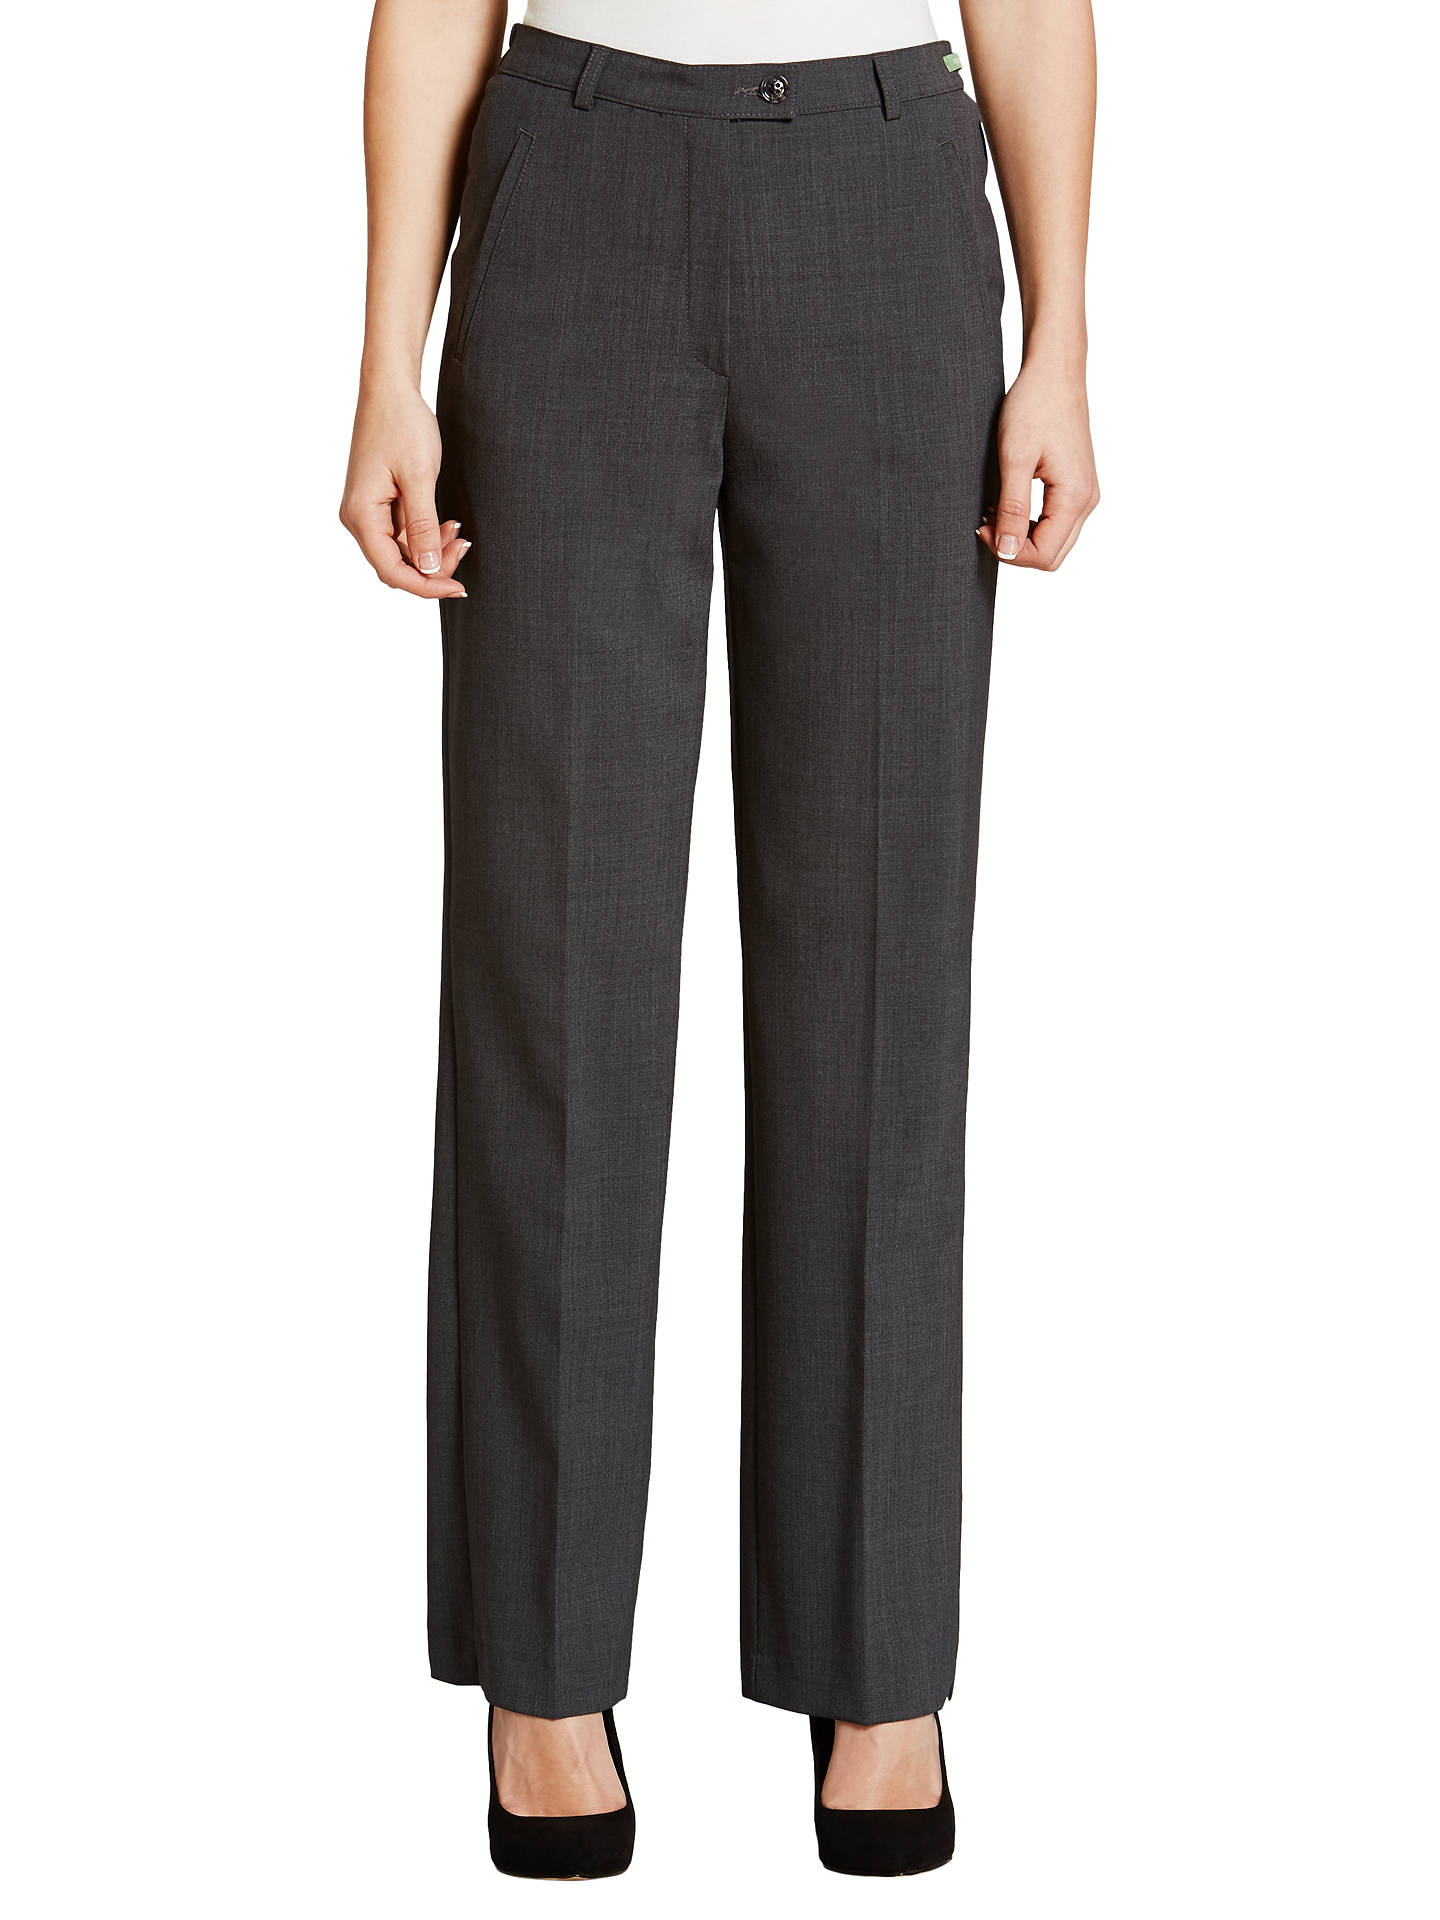 Gardeur city straight leg high rise trousers grey at john lewis buygardeur city straight leg high rise trousers grey 10r online at johnlewis reheart Images